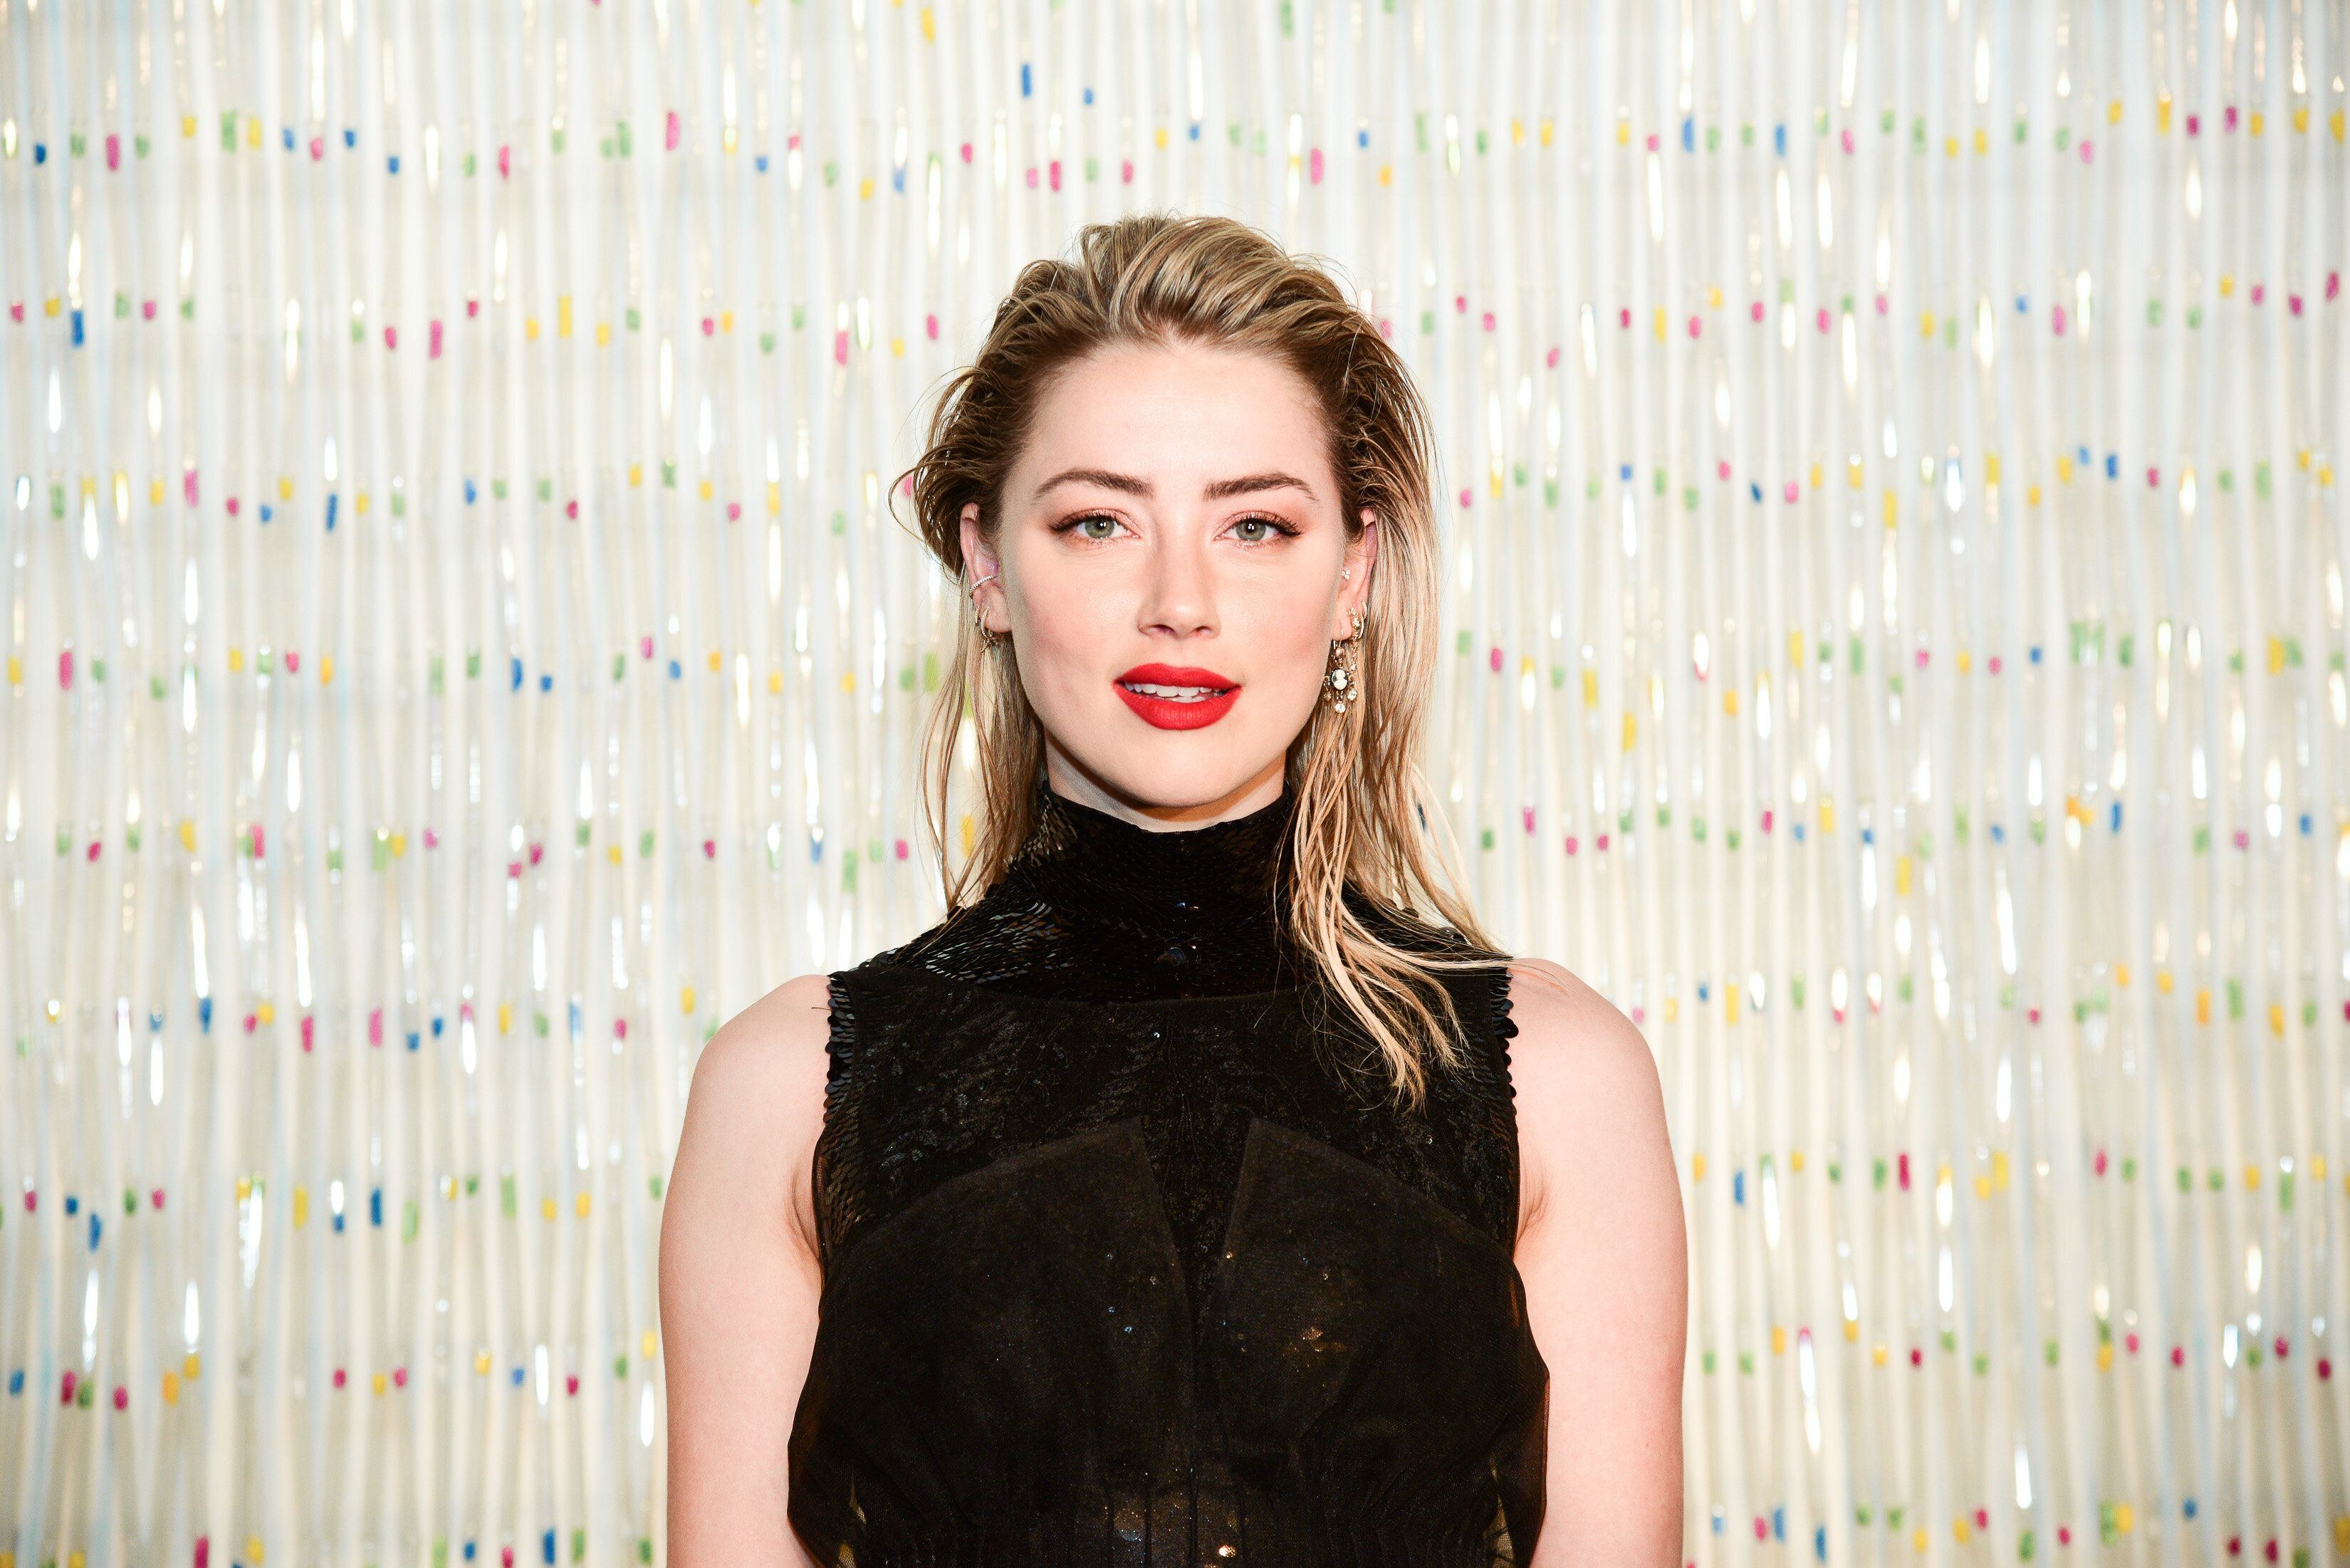 NEW YORK, NY - MAY 01:  Amber Heard attends the Planned Parenthood Of NYC / Spring Into Action Gala 2019 at Center 415 on May 1, 2019 in New York City.  (Photo by Aurora Rose/Patrick McMullan via Getty Images)